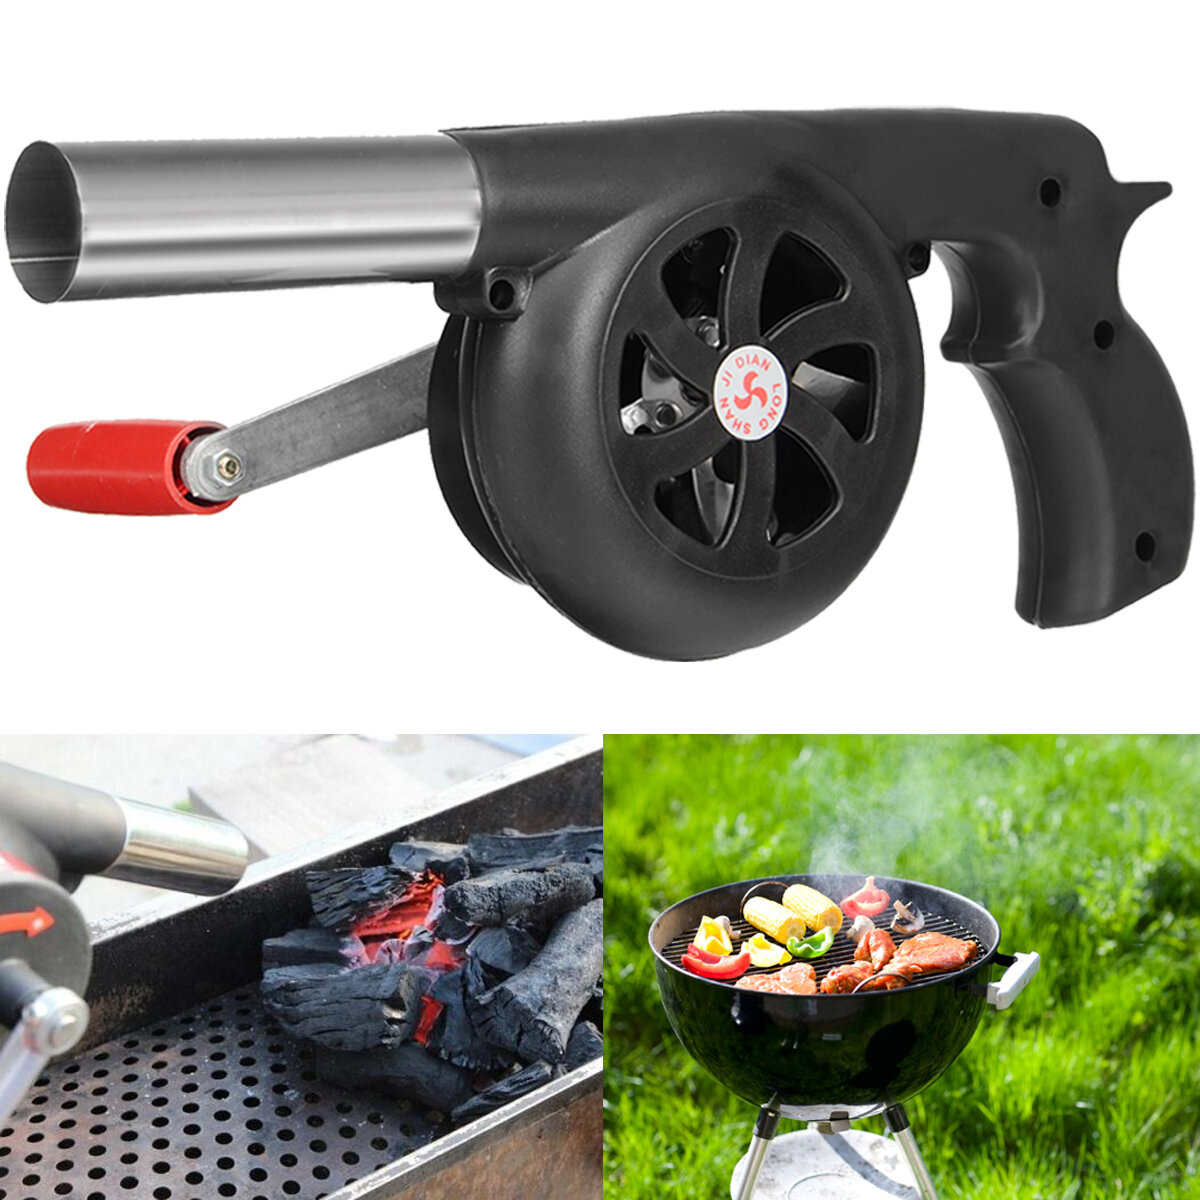 Charcoal Bbq Bbq Charcoal Grill Beads Fire Starter Powerful Fan Blower Large Hand Crank